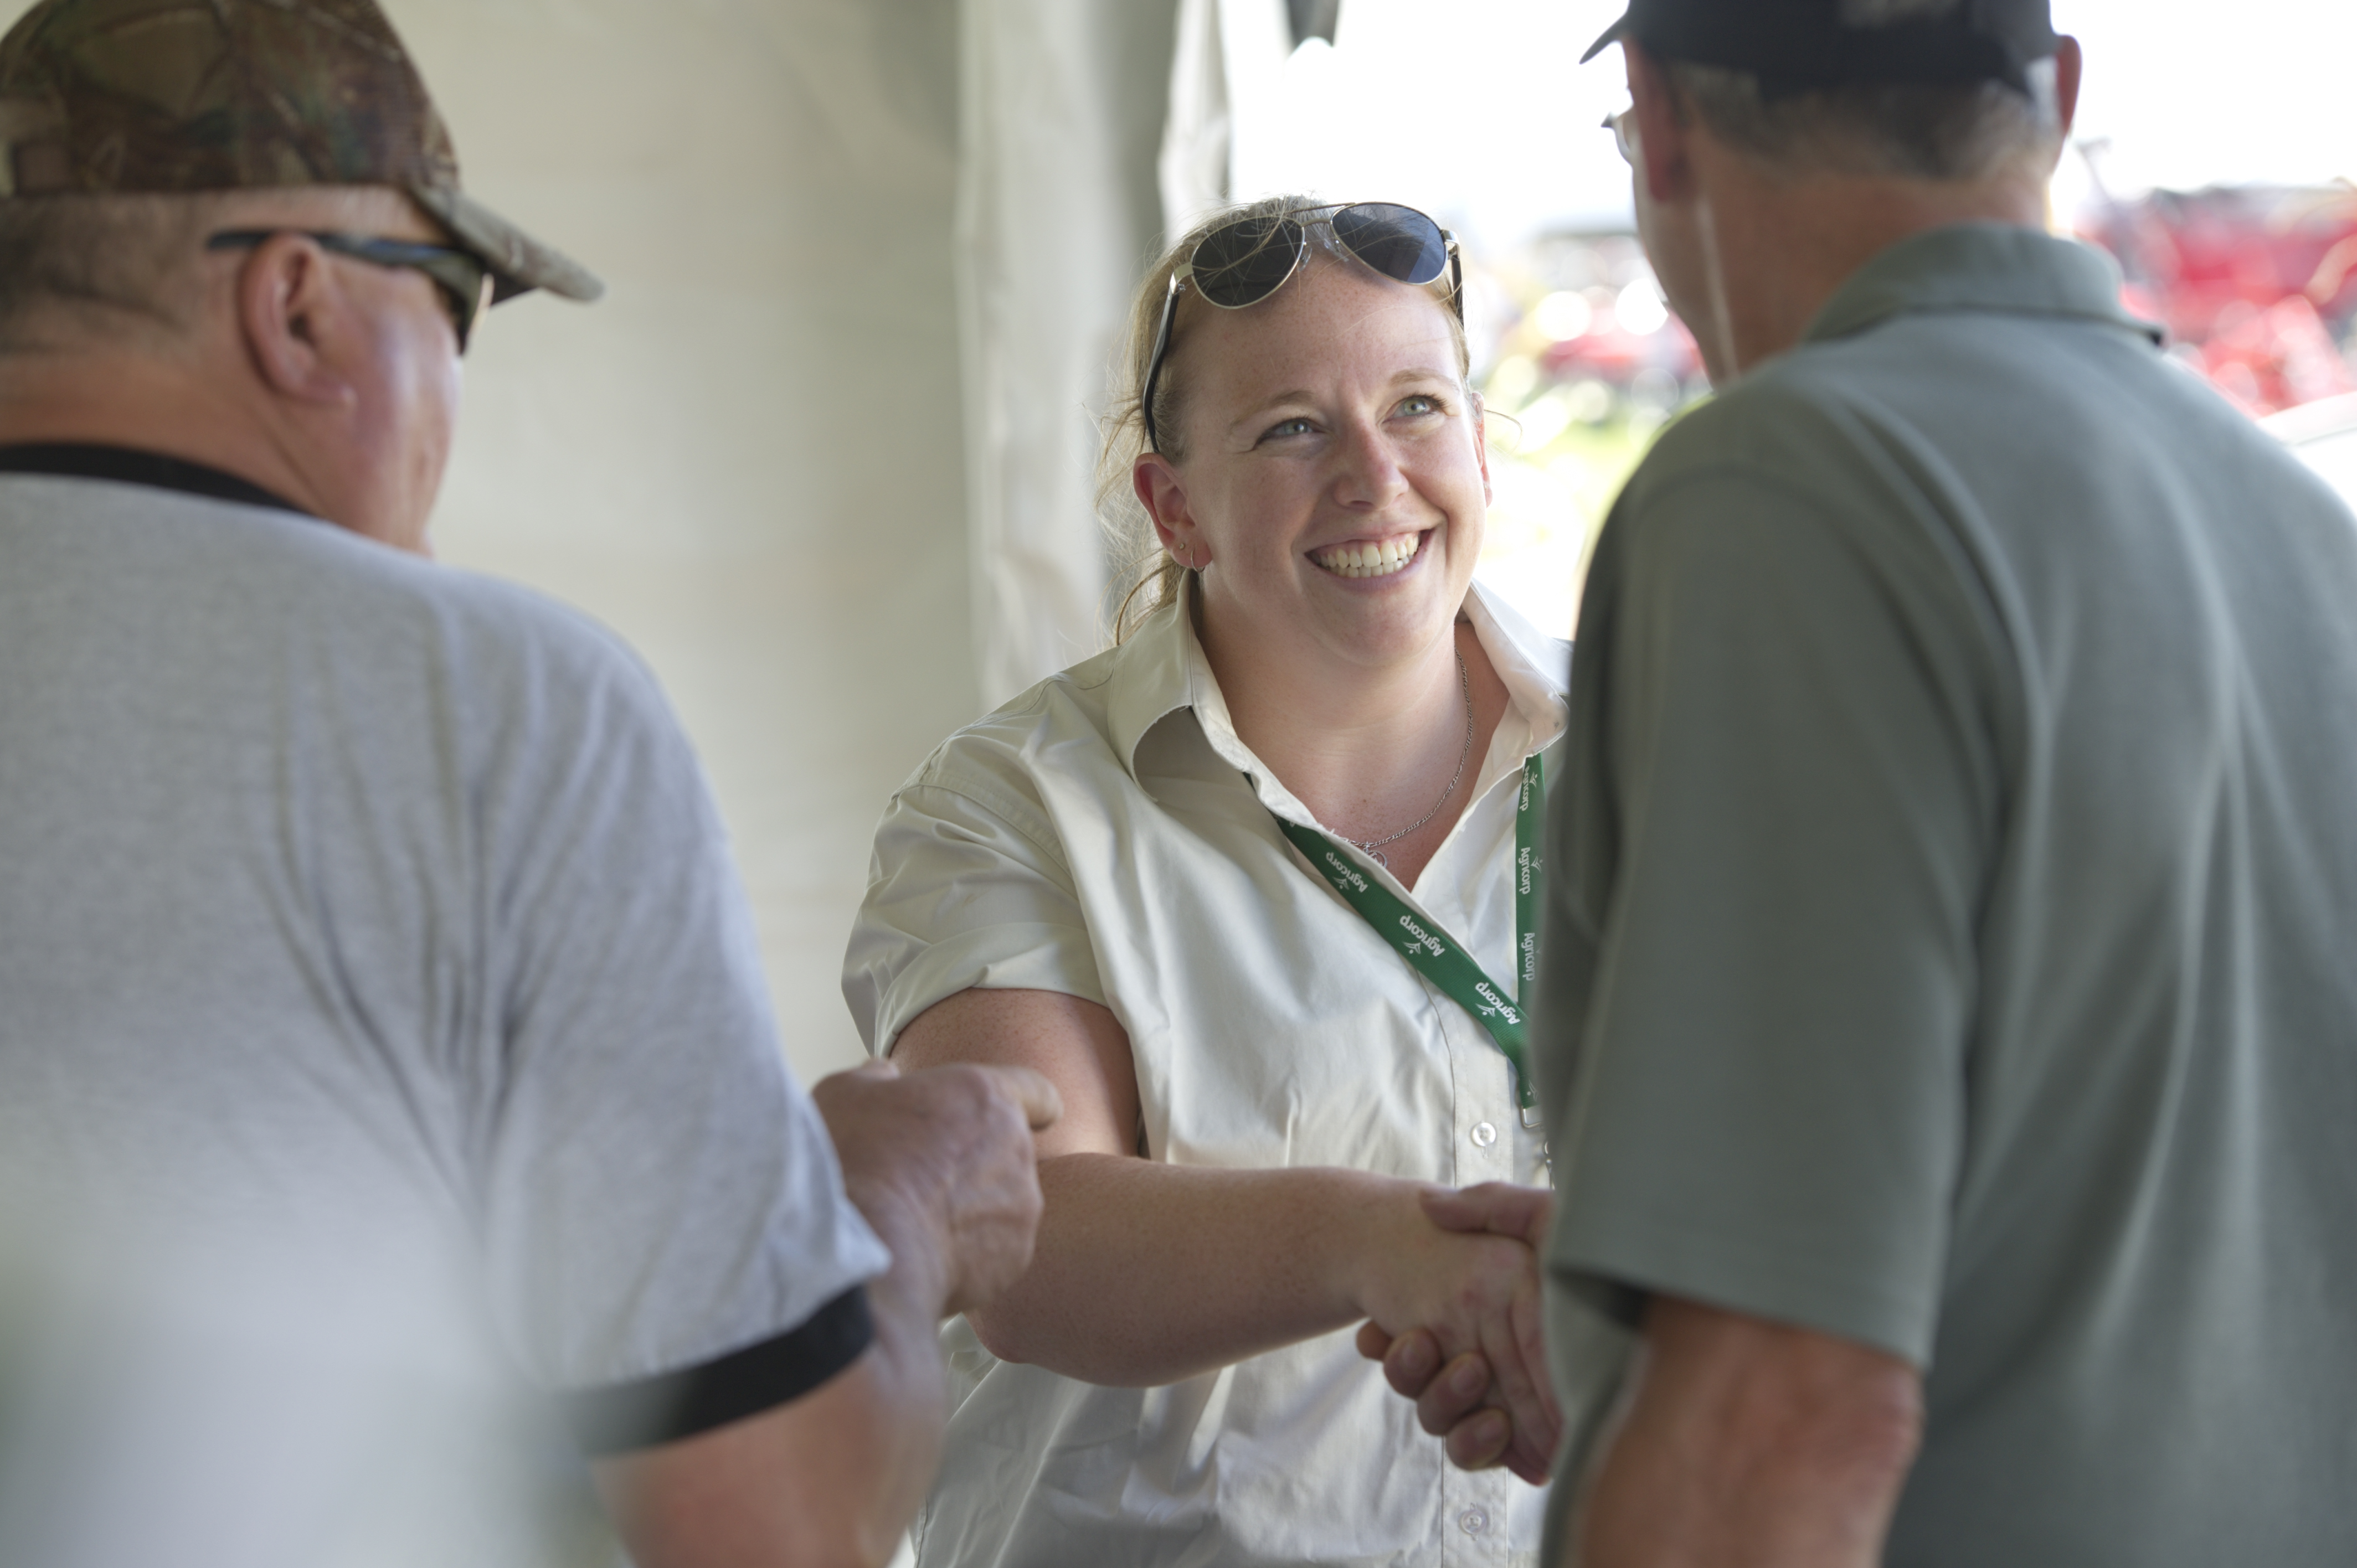 An Agricorp staff member shakes hands with a producer at a farm show.